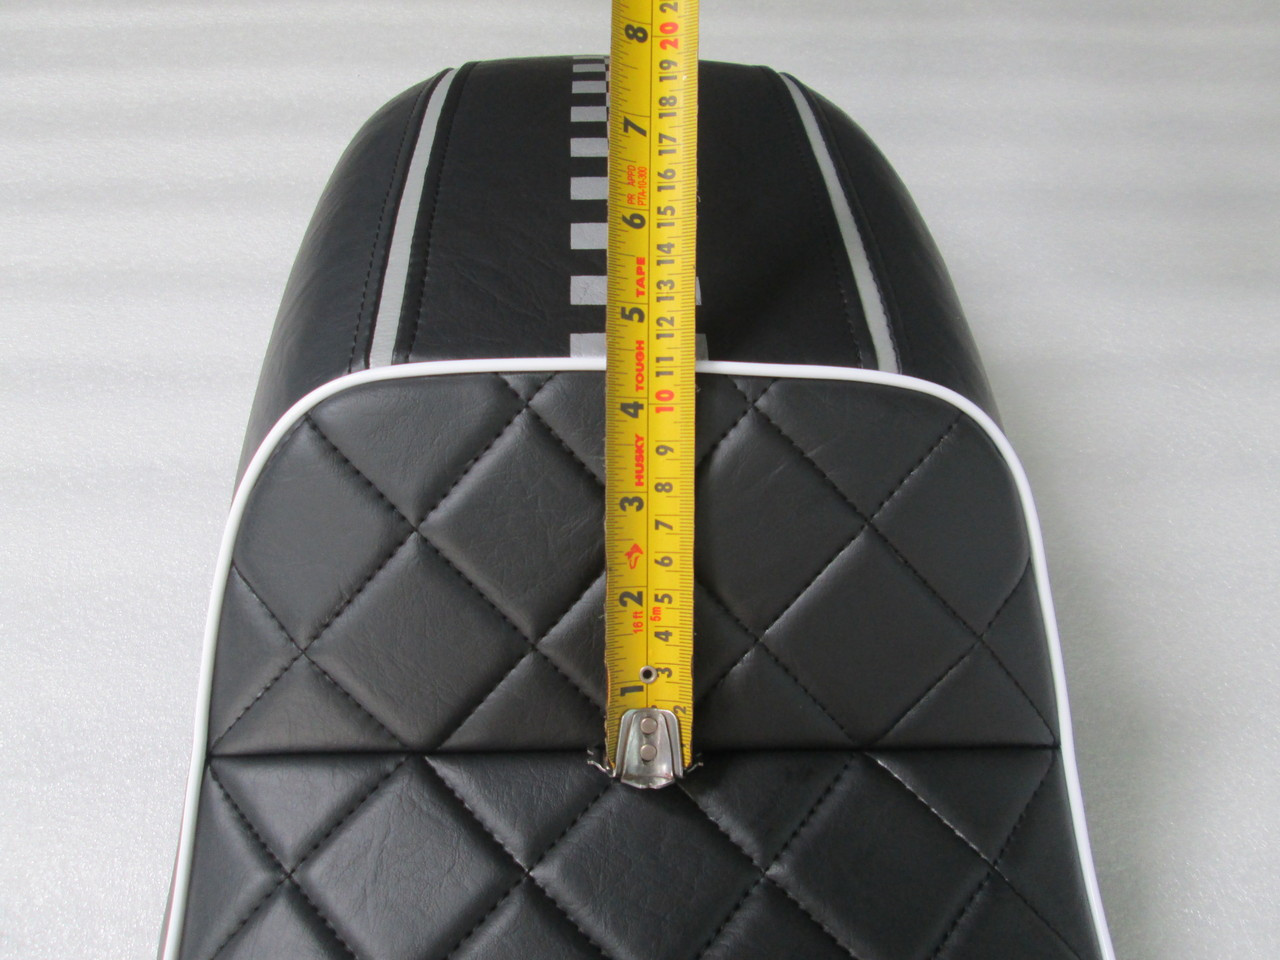 BMW Air Head R90 R100 Cafe Racer Motorcycle Seat Unit #4181